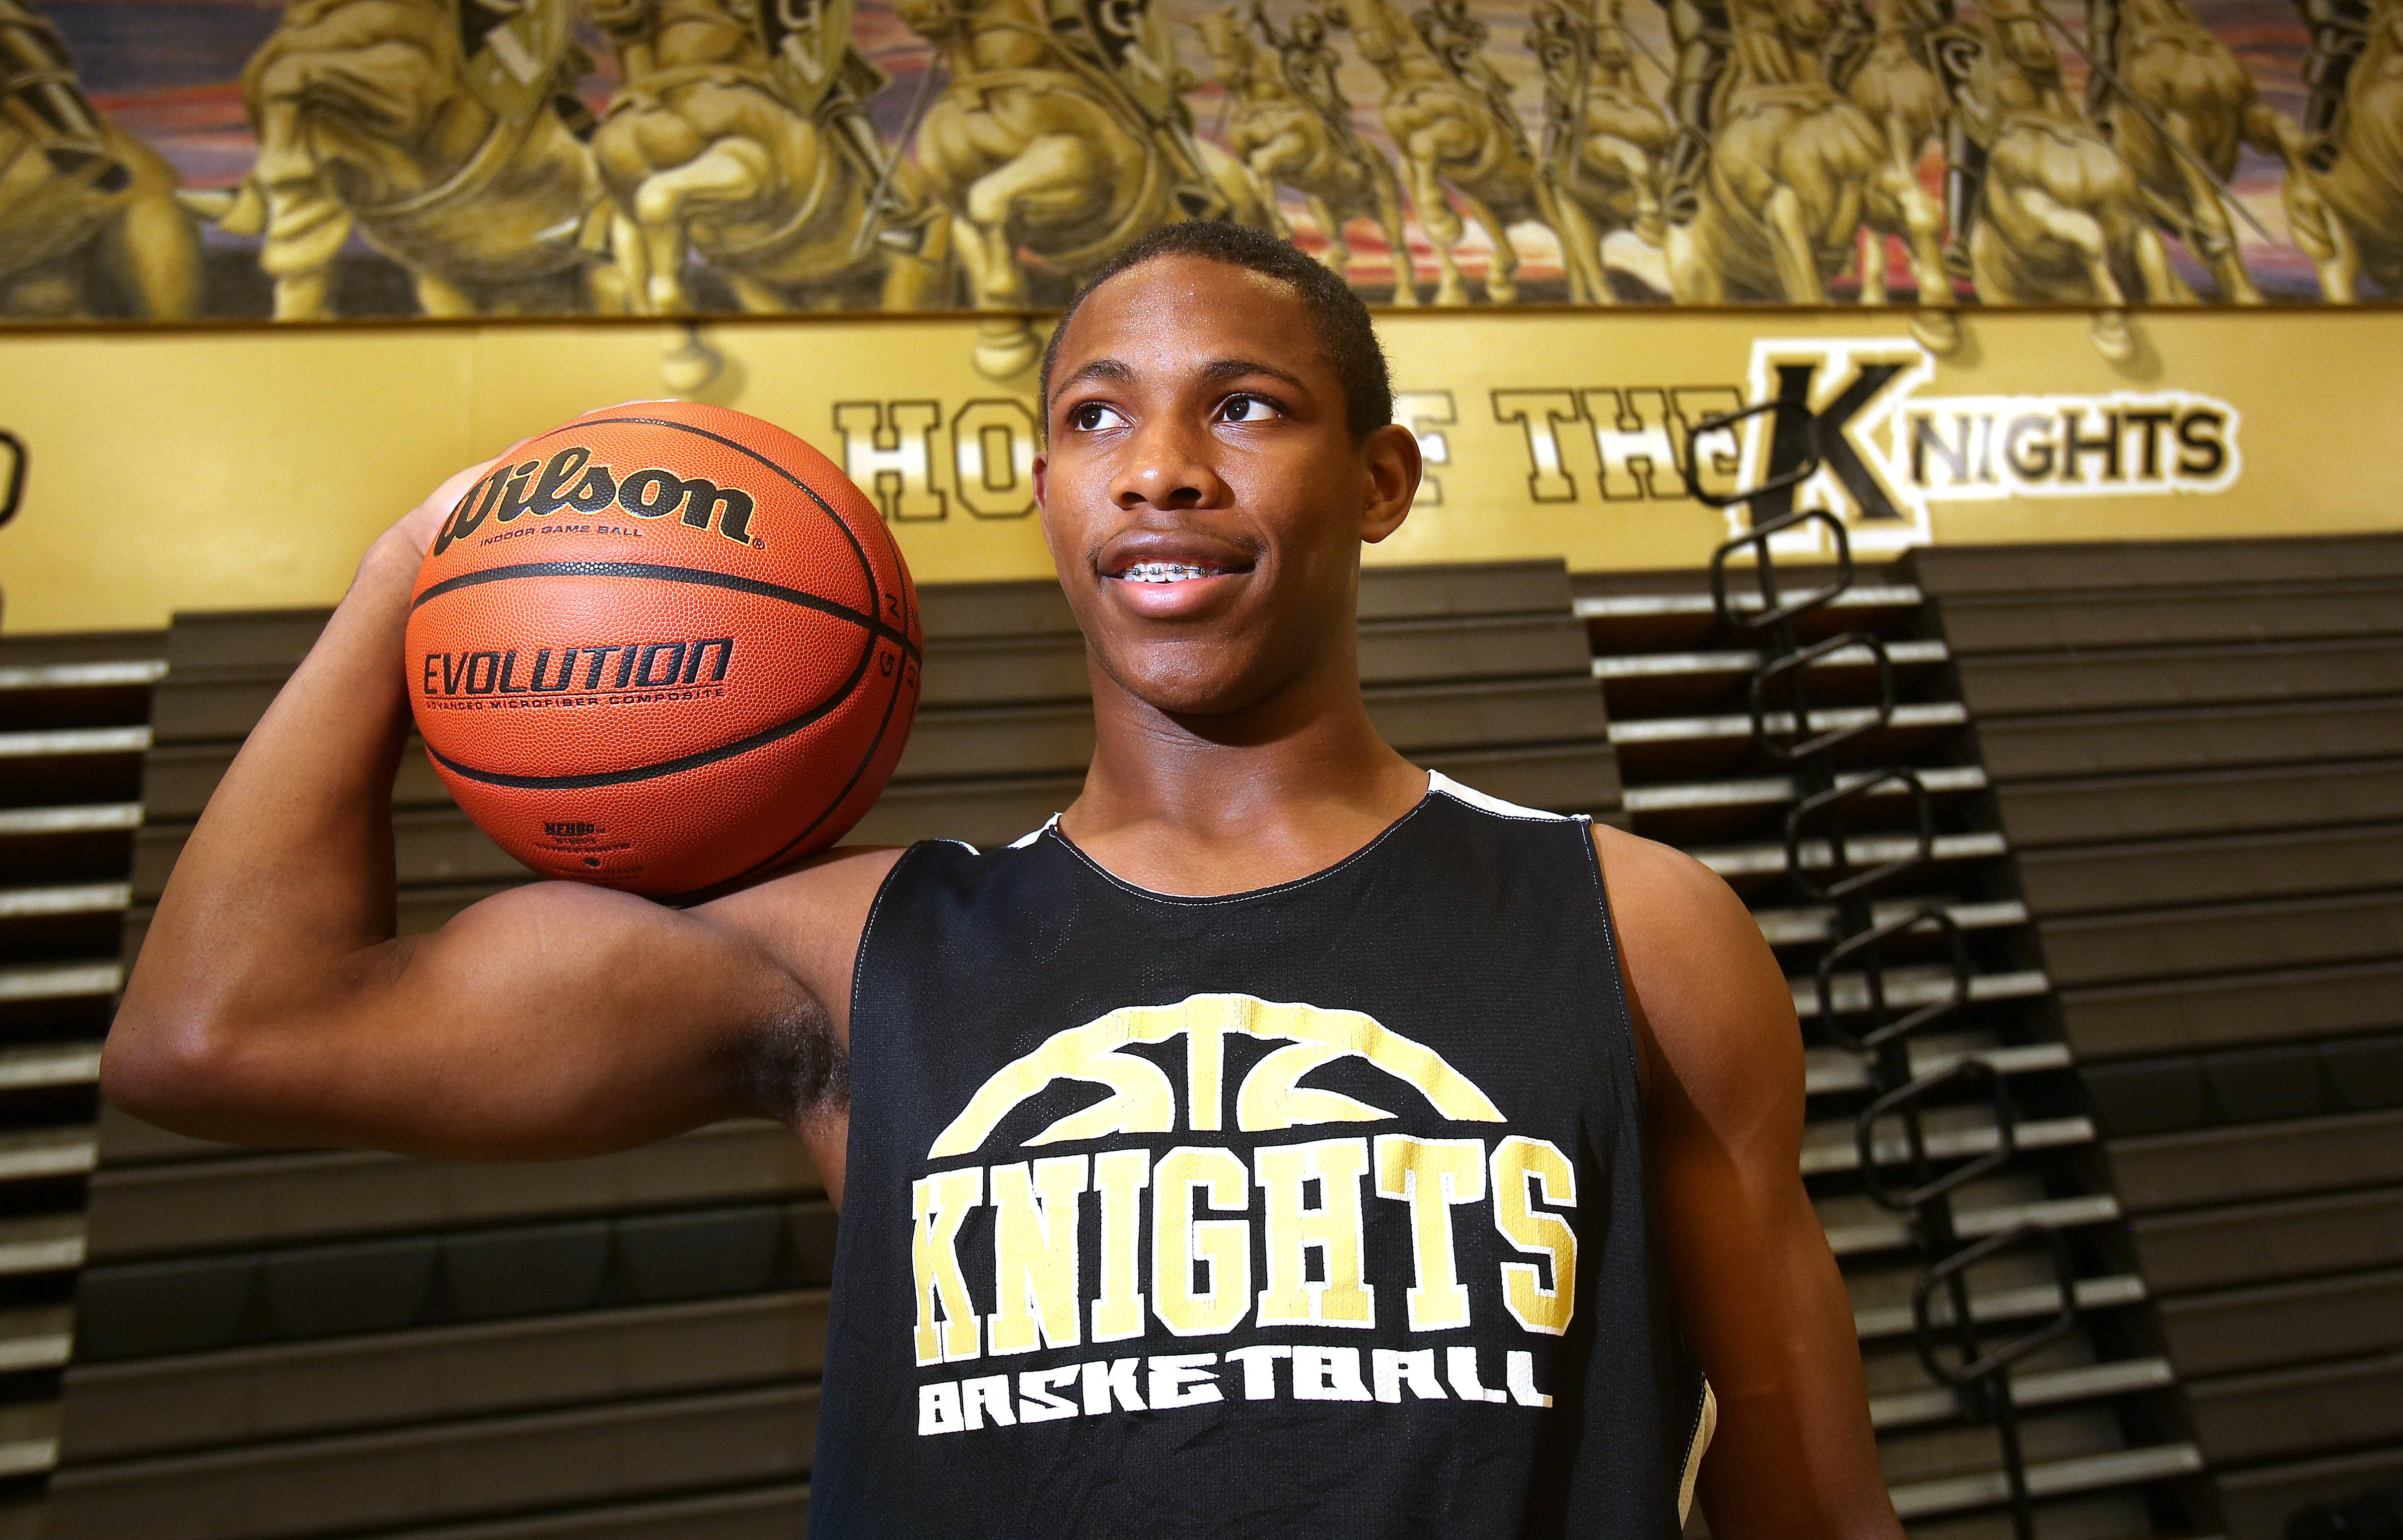 Grayslake North's Jamal Thomas is a speedy guard and one of the best returning players in Lake County. He came to the area from Detroit and is enjoying a totally different style of basketball with the Knights.